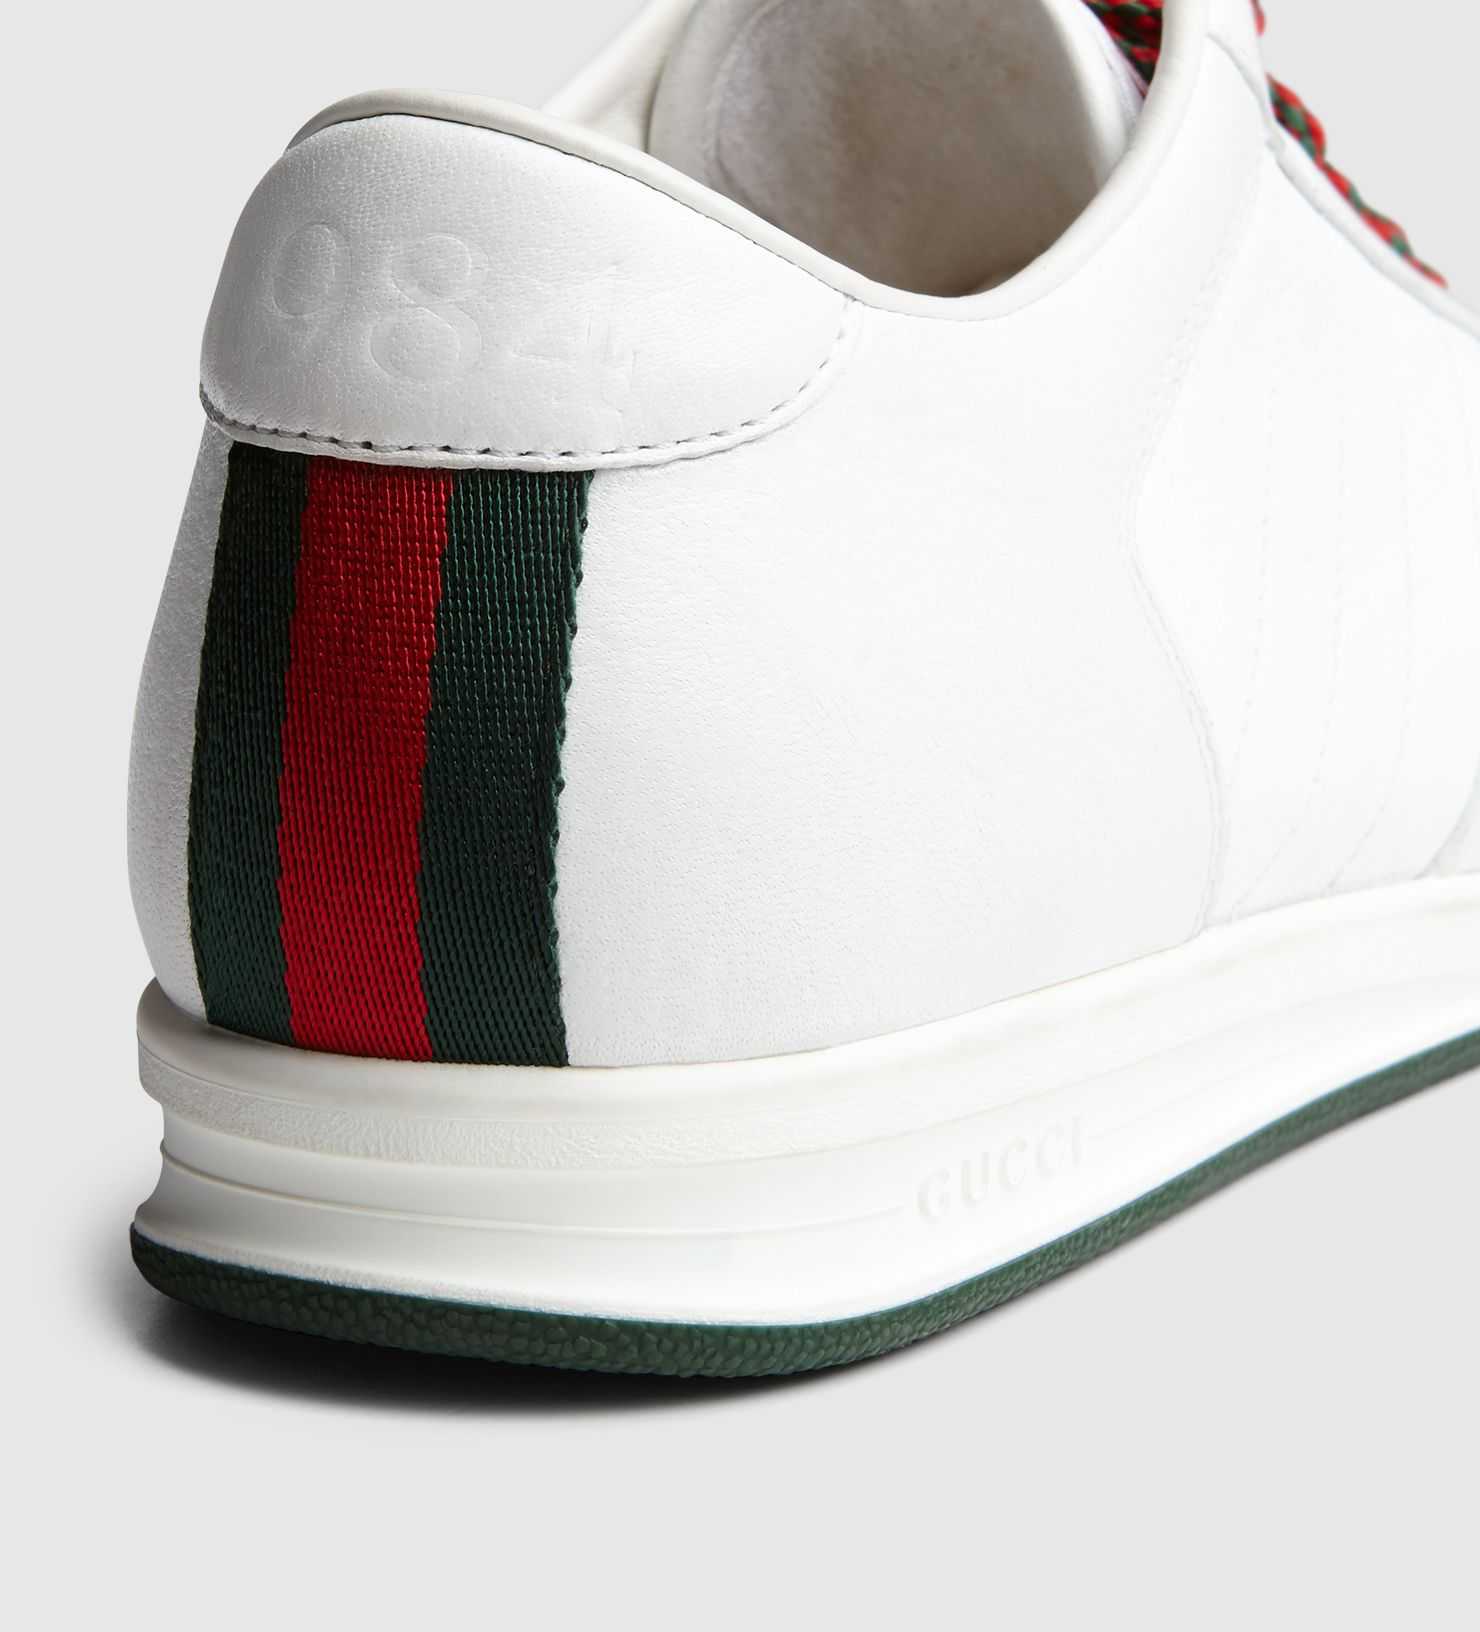 f07df1787 Gucci 1984 Low Top Sneaker in Leather. The 1984 collection celebrates the  anniversary of the